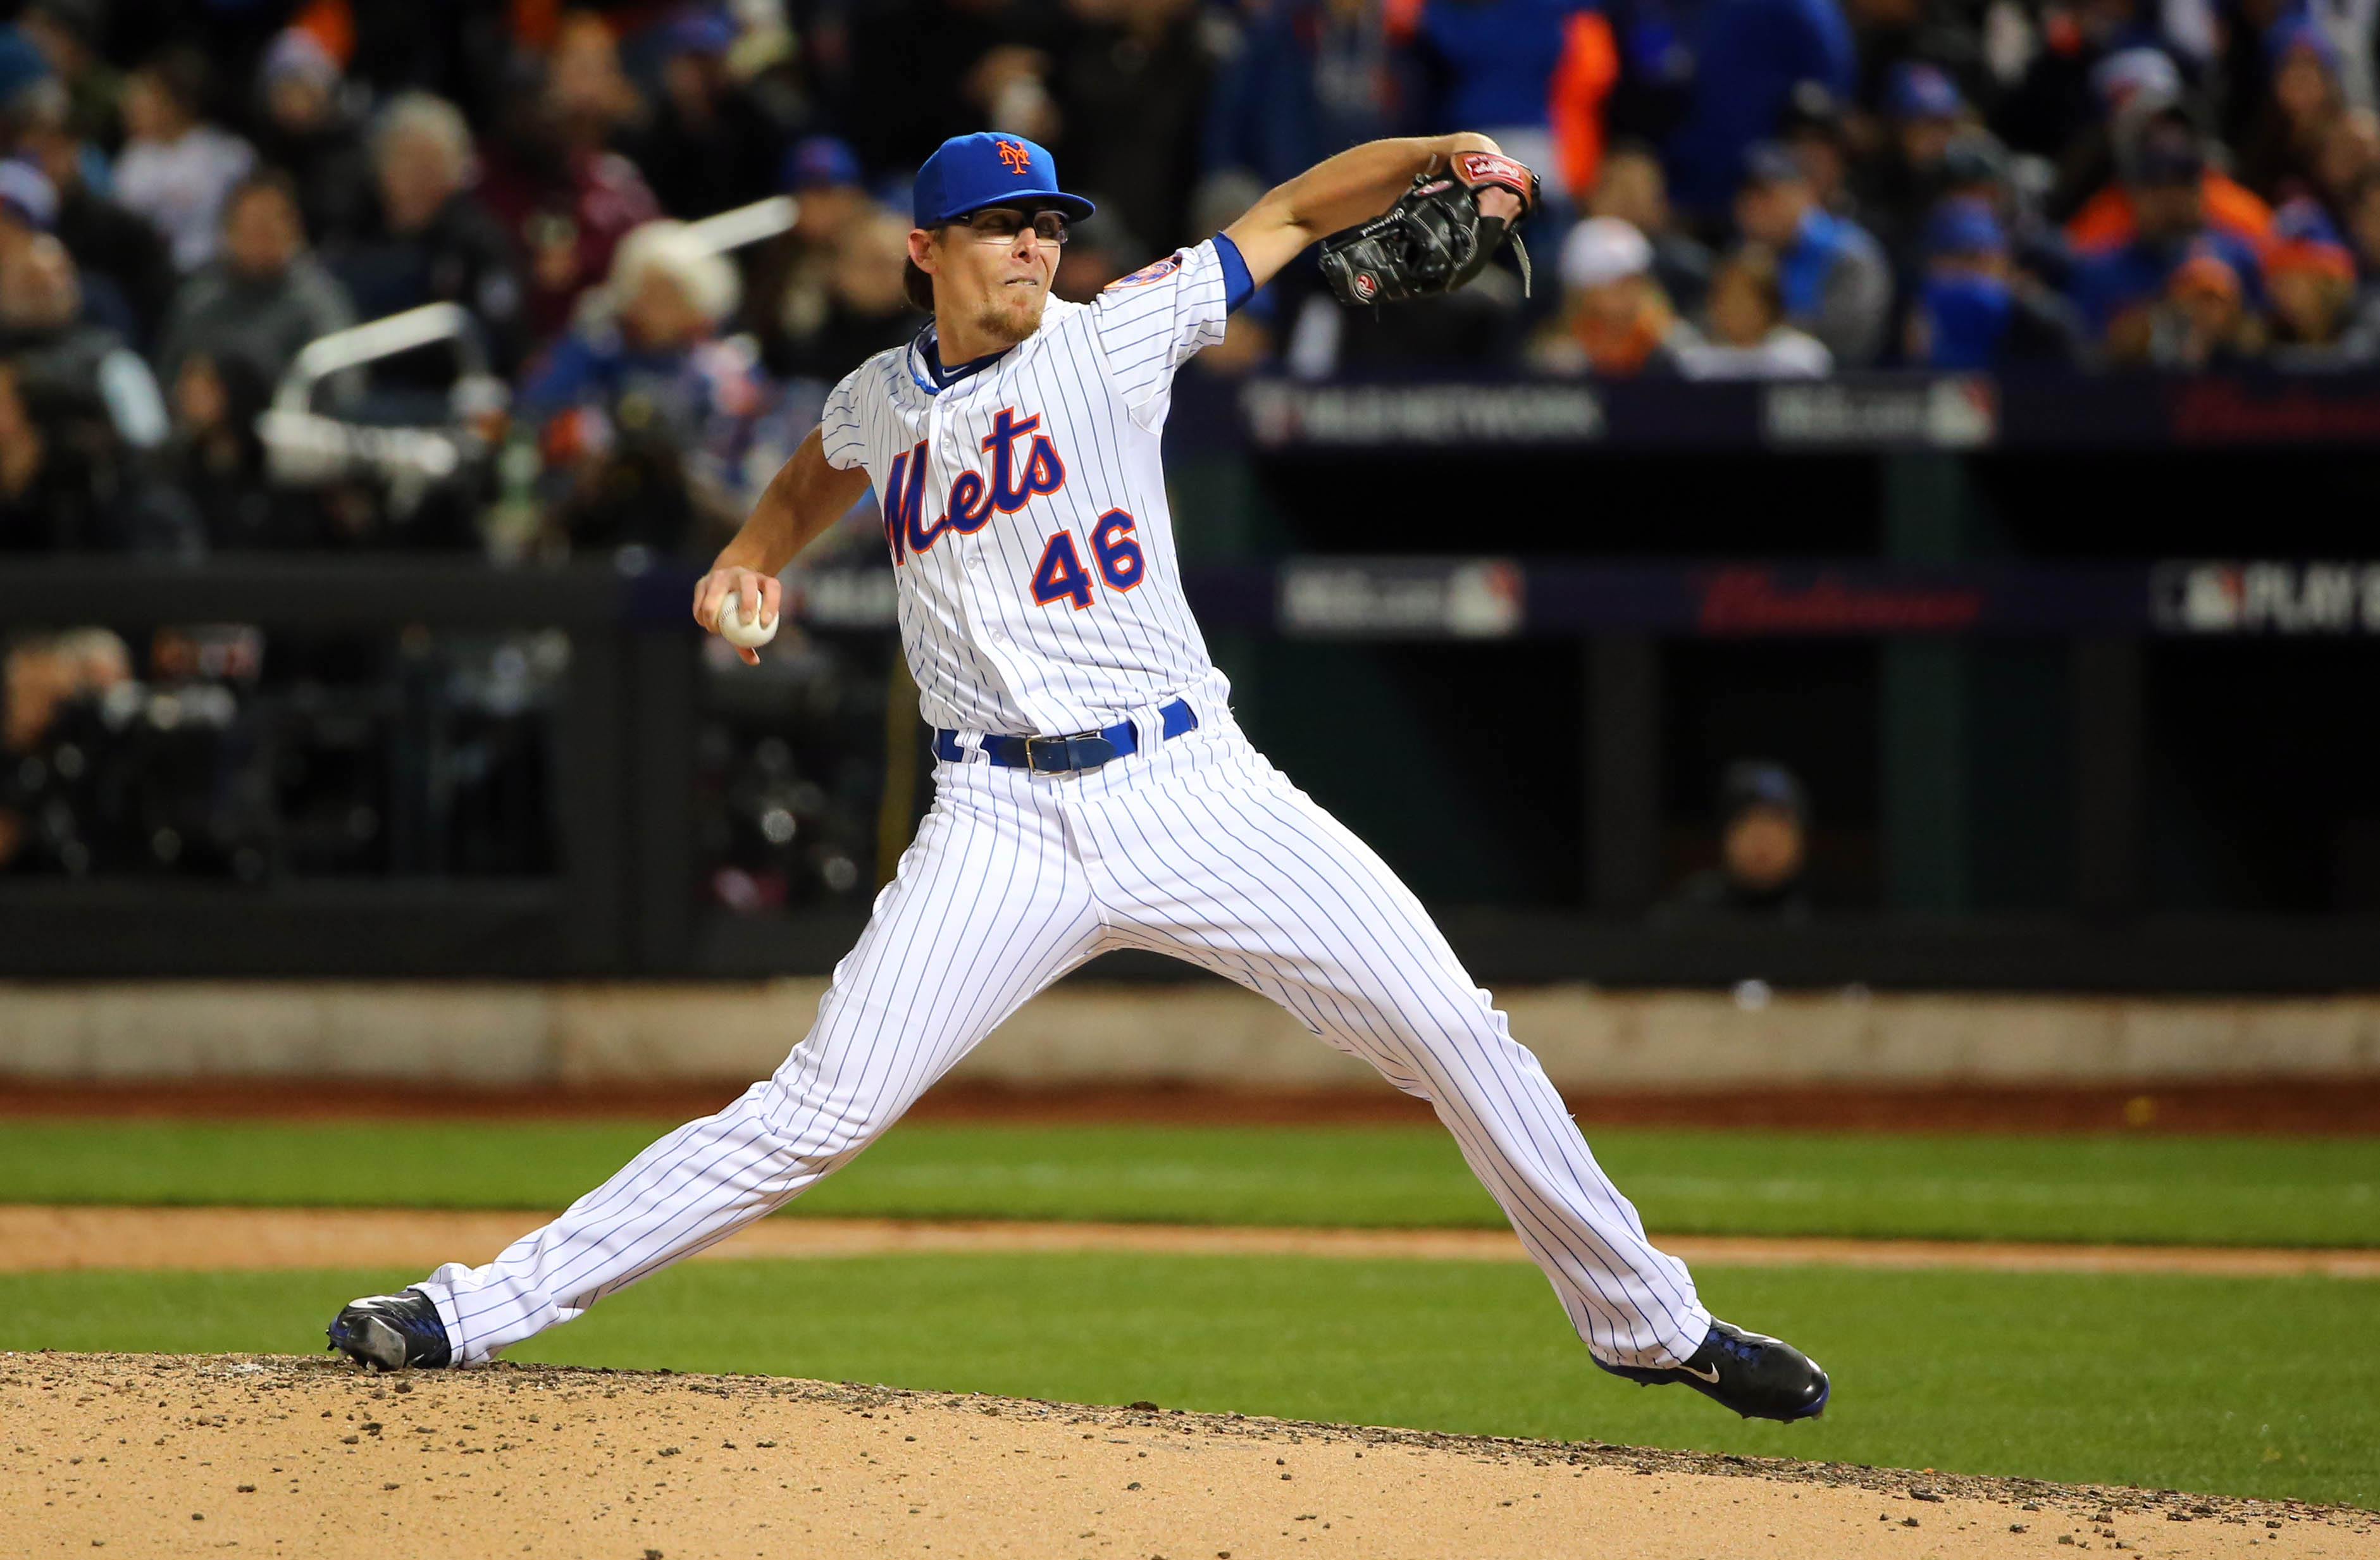 Could Tyler Clippard fill the void left by Jake McGee being traded?